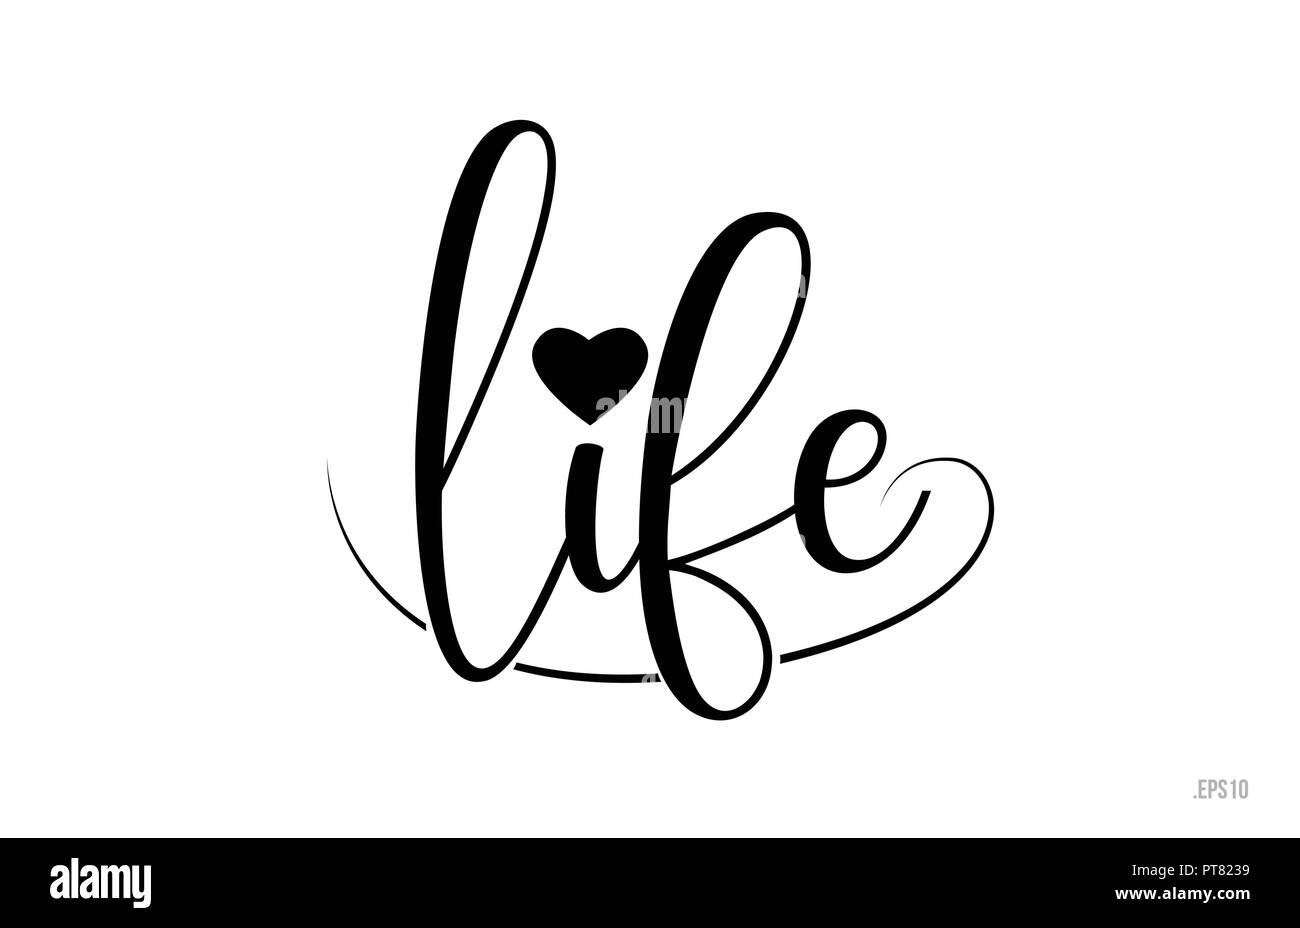 Life word text with black and white love heart suitable for card brochure or typography logo design